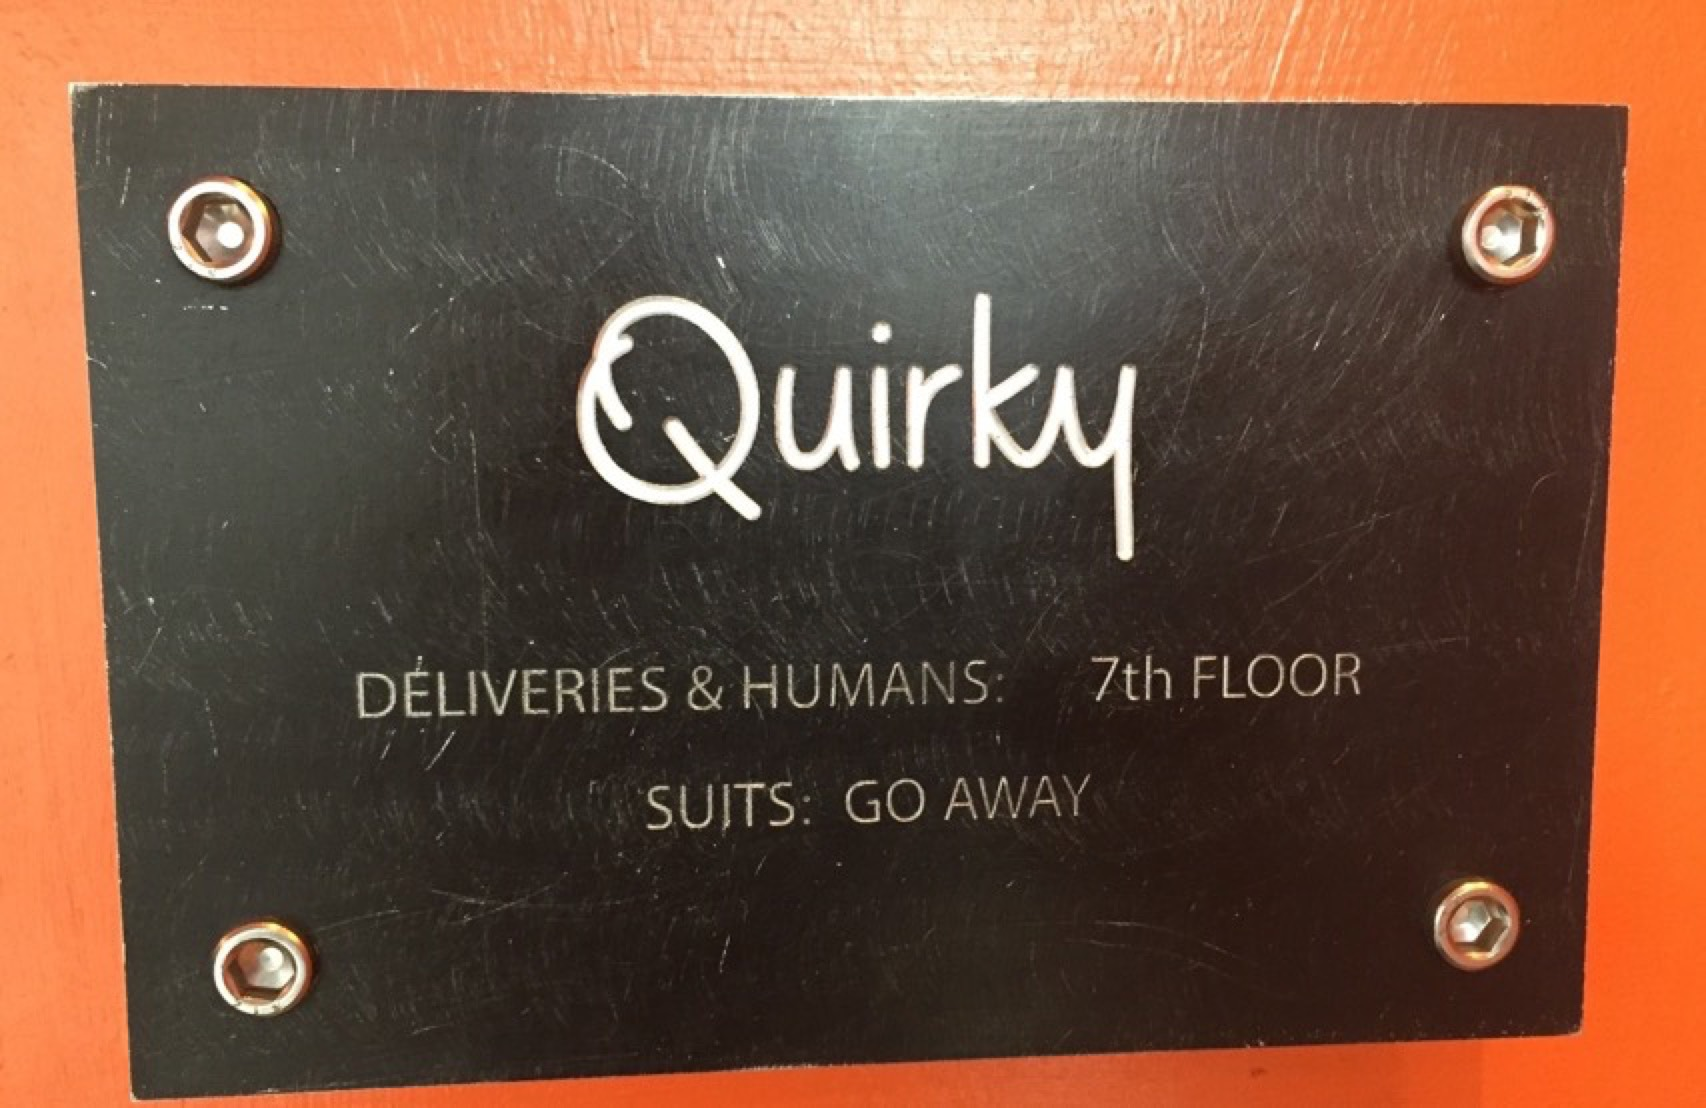 Quirky-1-1-1